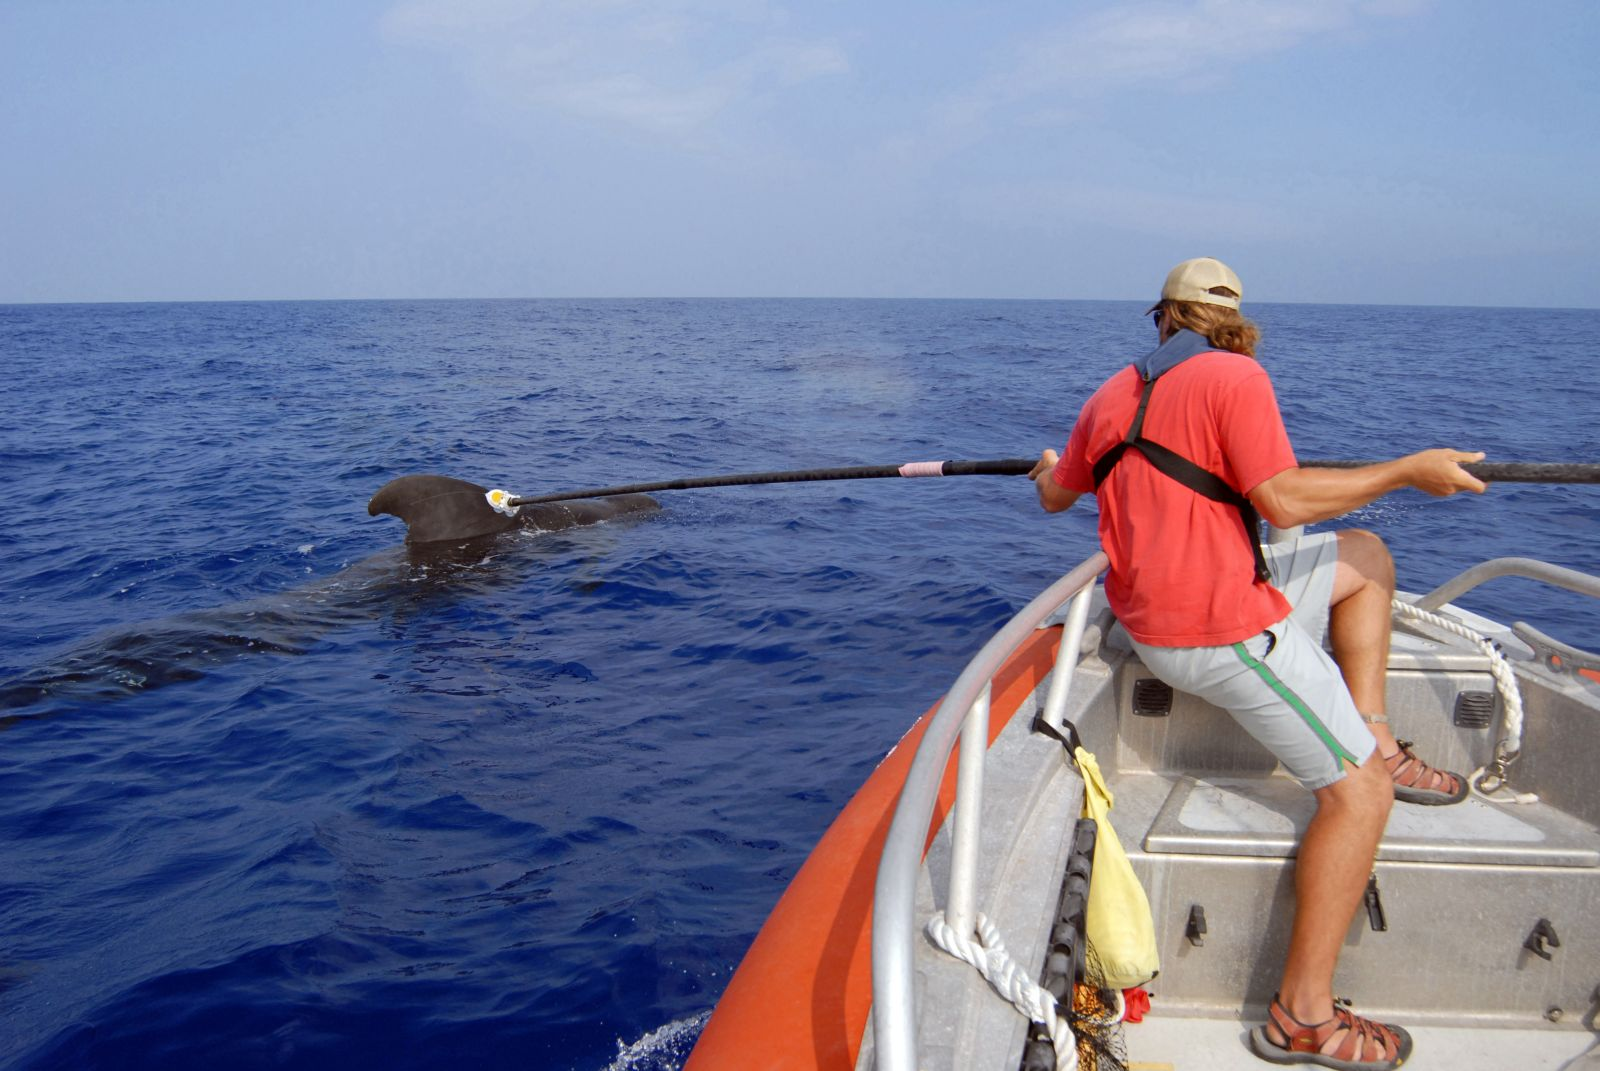 720-N-9316F-002_Ari_Friedlaender_a_Duke_University_Marine_Laboratory_researcher_attaches_a_D-TAG_to_a_pilot_whale_off_the_coast_of_Kona_Hawaii.jpg